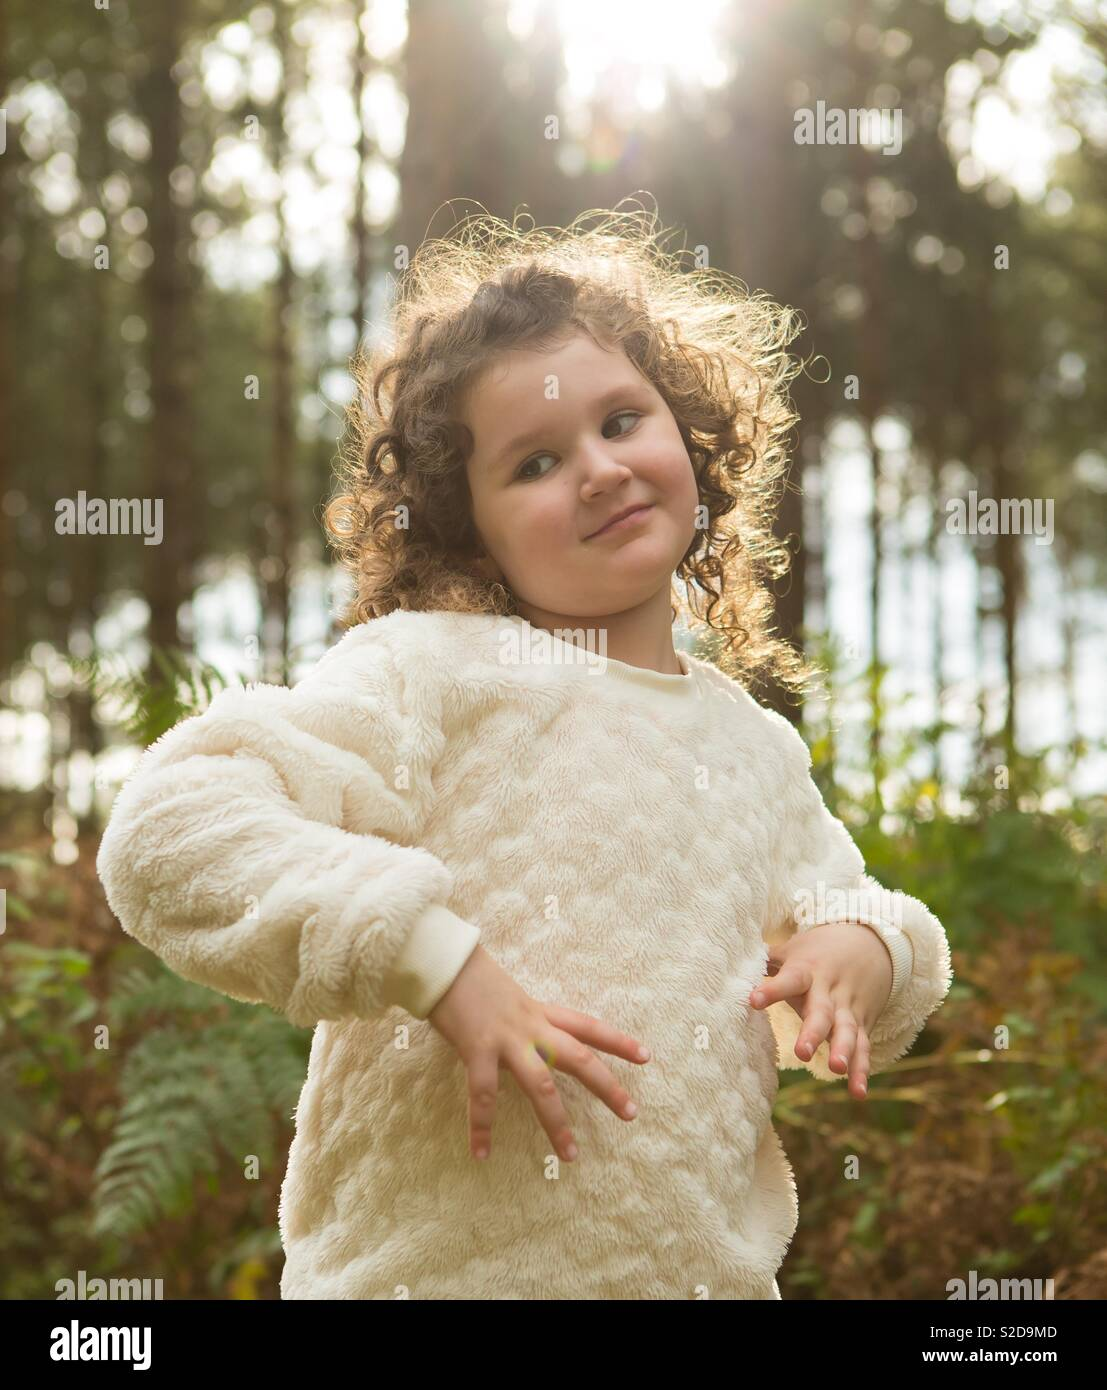 Beautiful curly haired young girl stood in the sunshine in the woodland forest at Cannock Chase, Staffordshire. - Stock Image